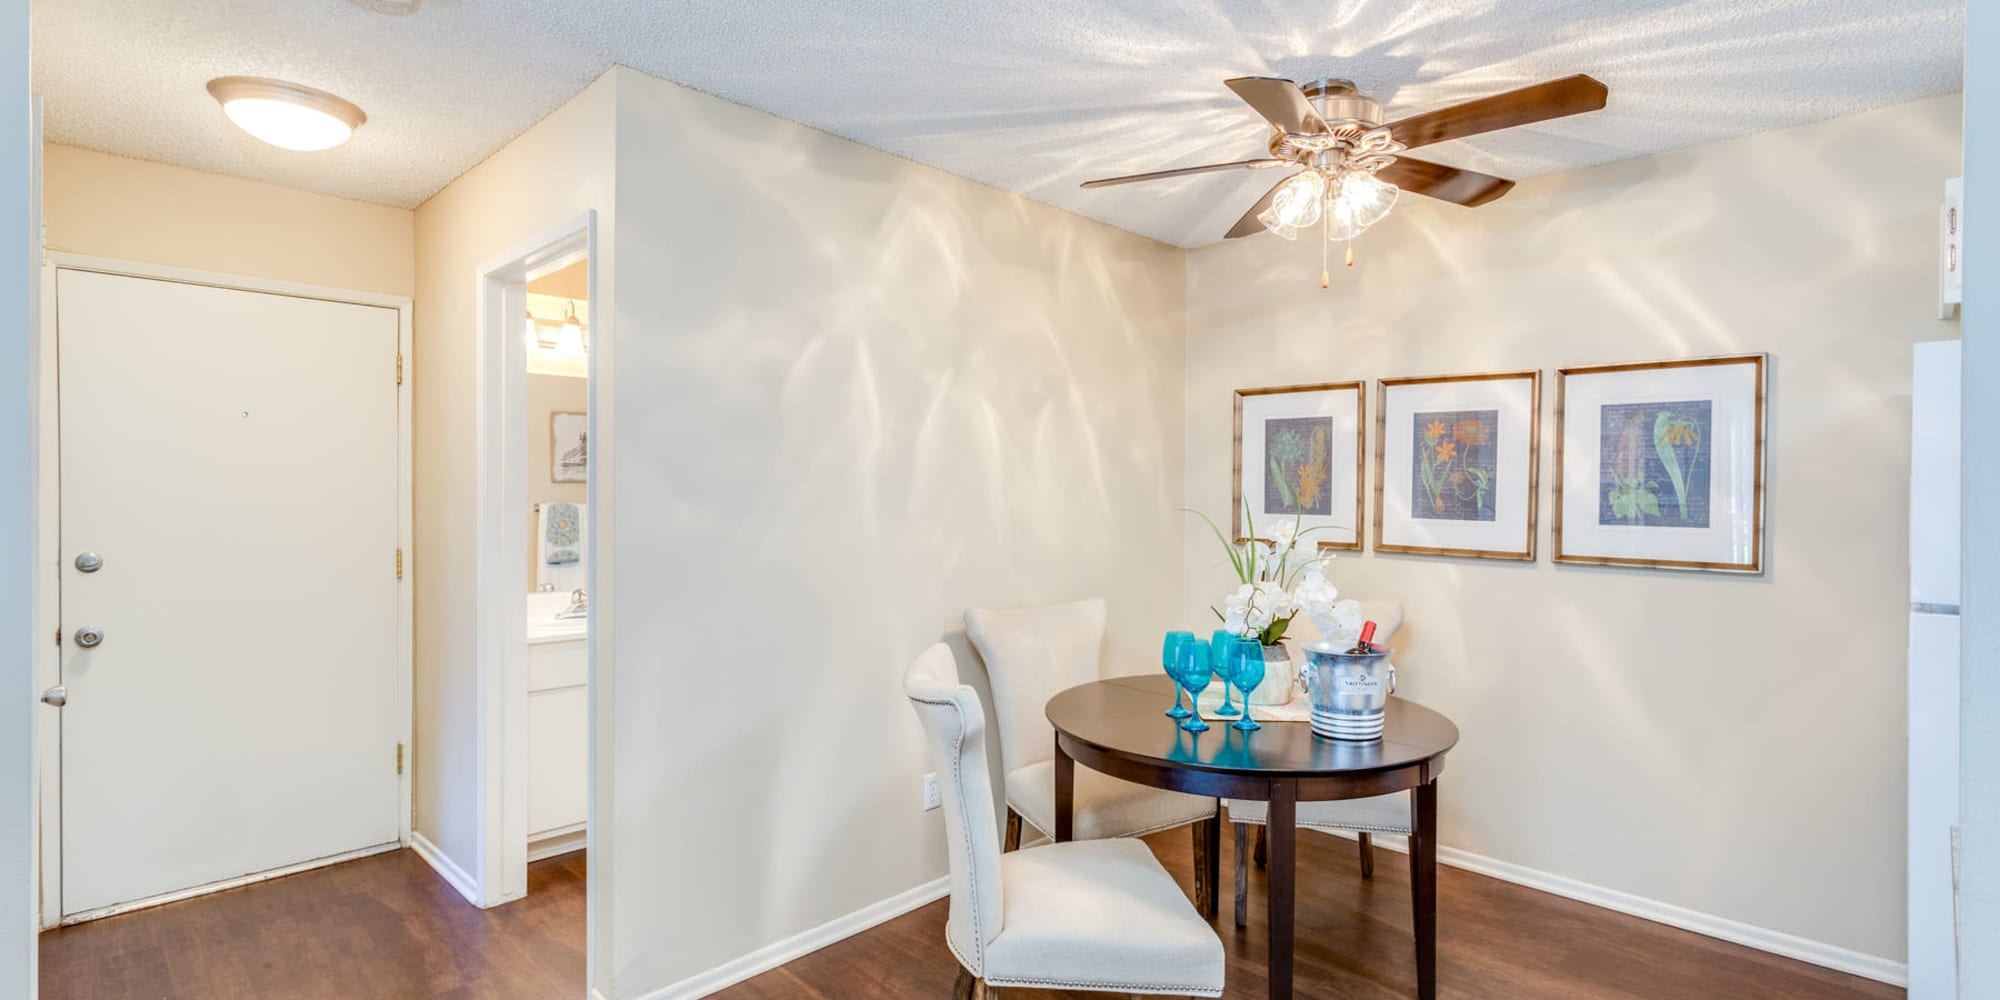 Ceiling fan above the dining nook in a model home at Mountain Vista in Victorville, California